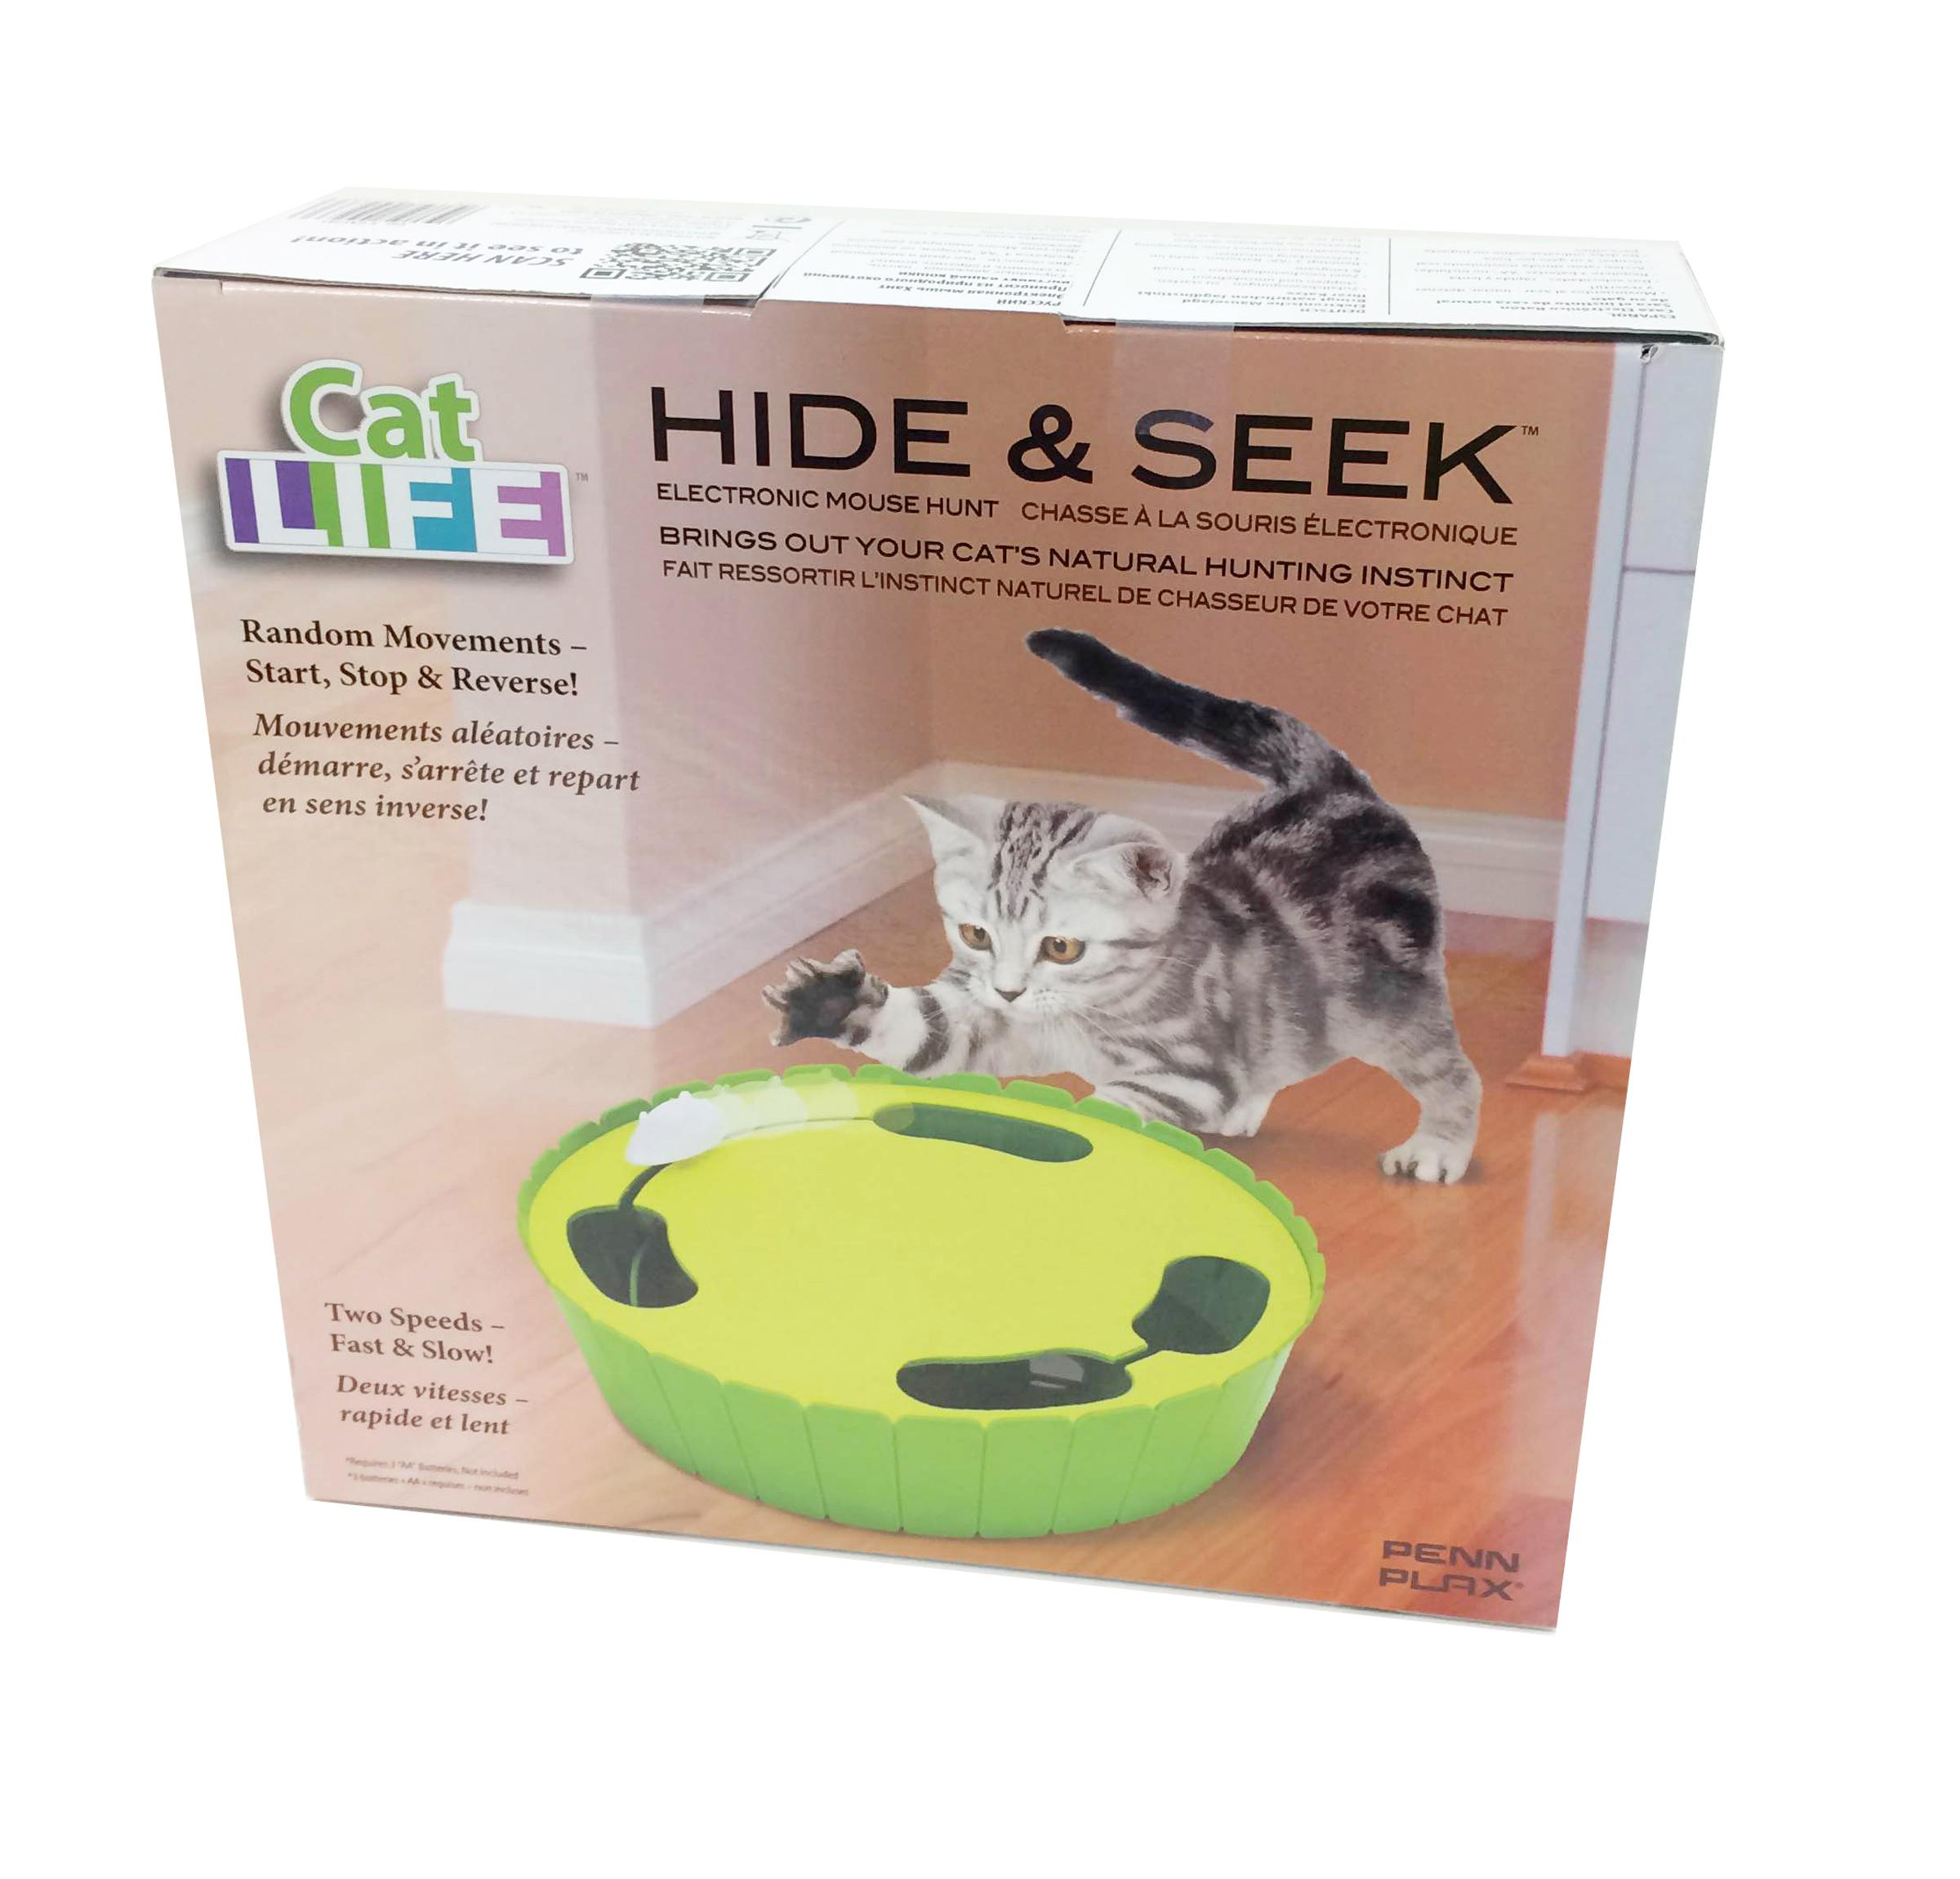 Penn Plax Interactive Electronic Hide And Seek Mouse Votrr View Larger